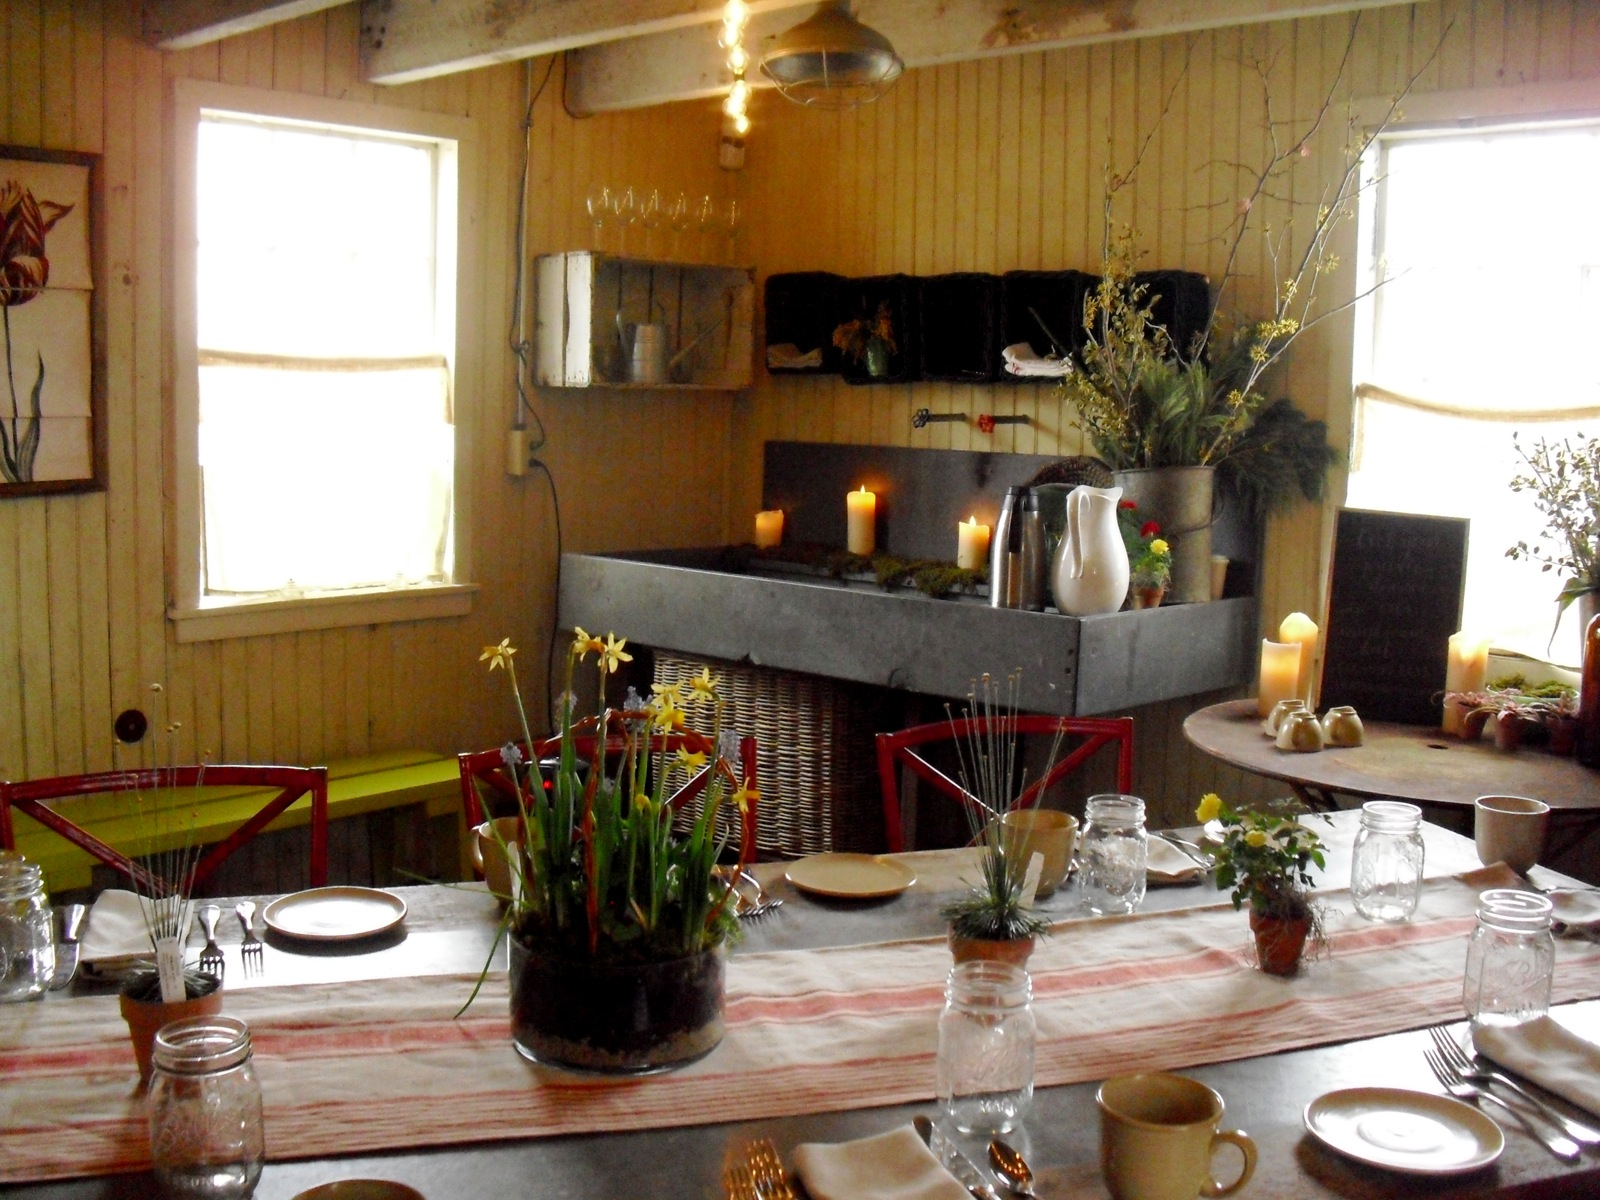 Antique Farmhouse Restaurant Inside Old Mushroom Growing Shack Hut At Terrain Glenn Mills